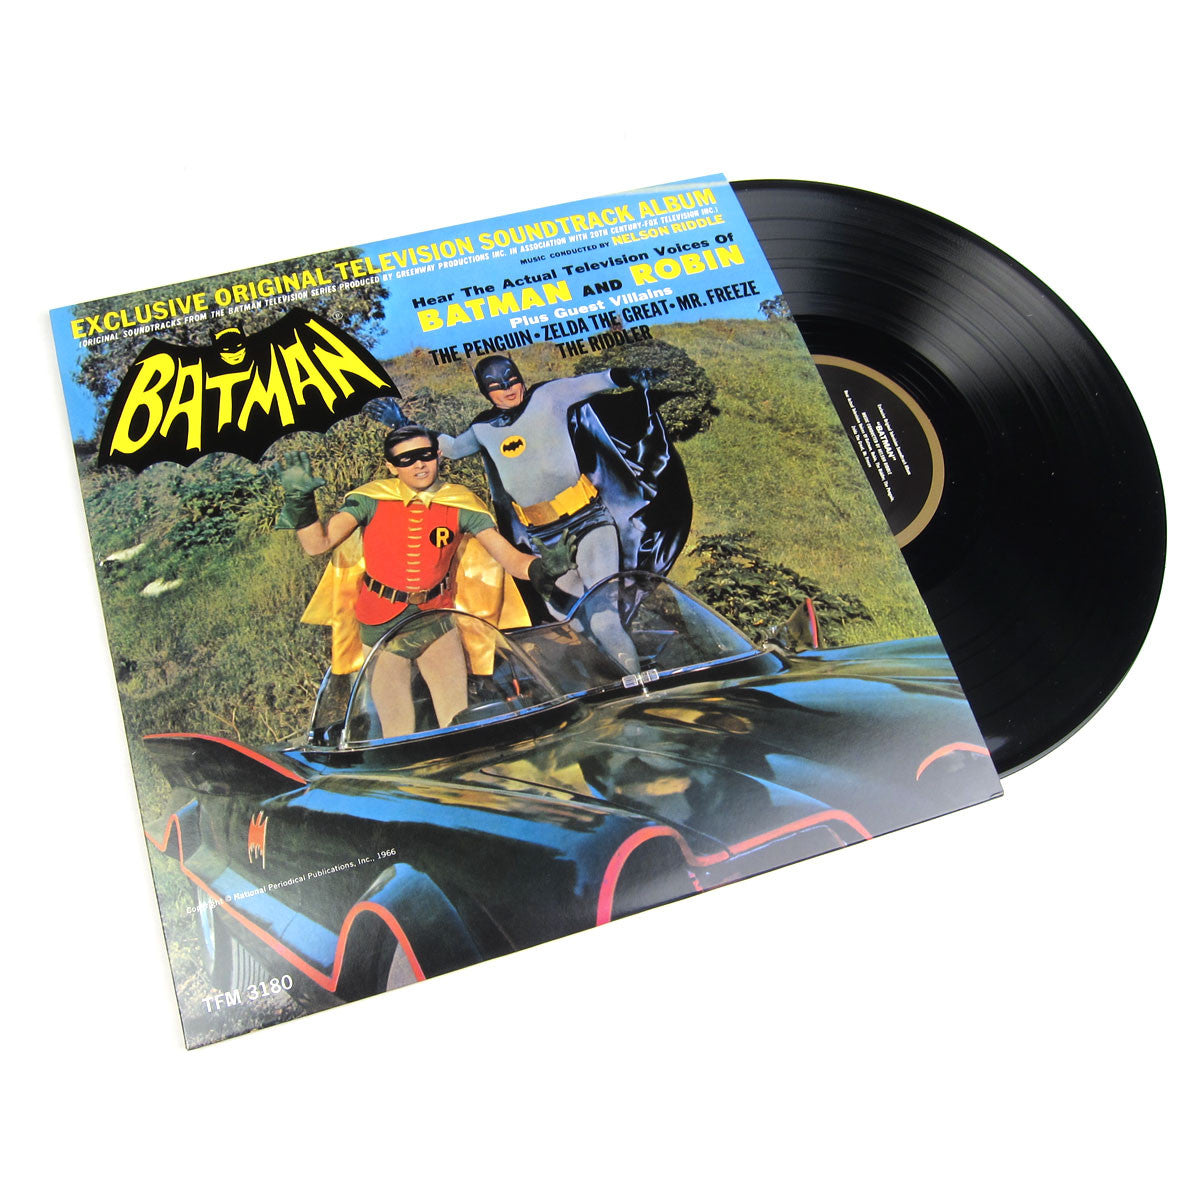 Batman: Exclusive Original Television Soundtrack Album Vinyl LP